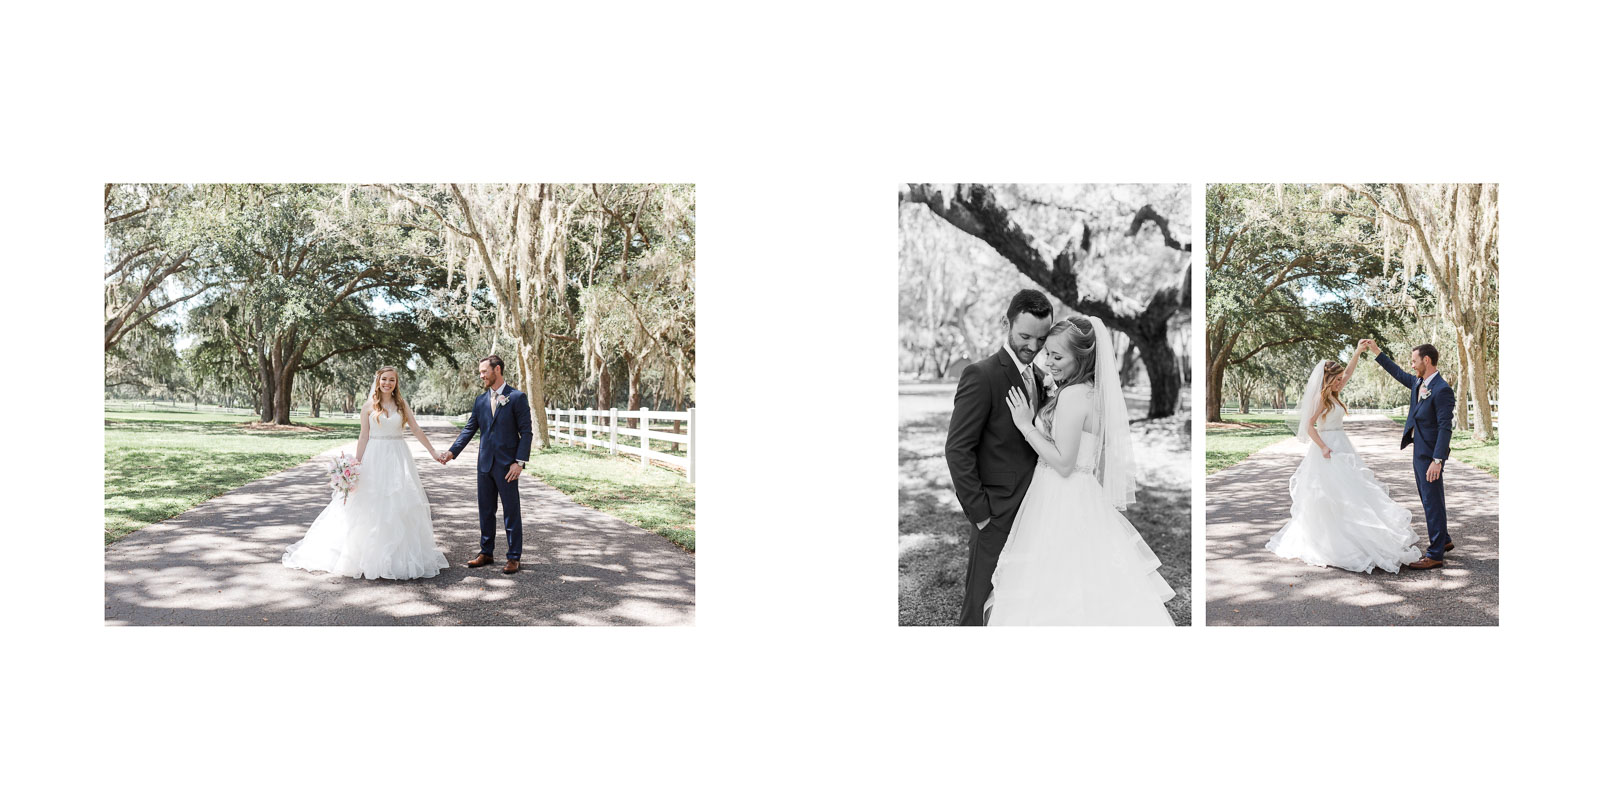 Carography-Studios-the-Lange-Farm-Weddings-Stone-Bridge-Events-Tampa-FL-21.jpg